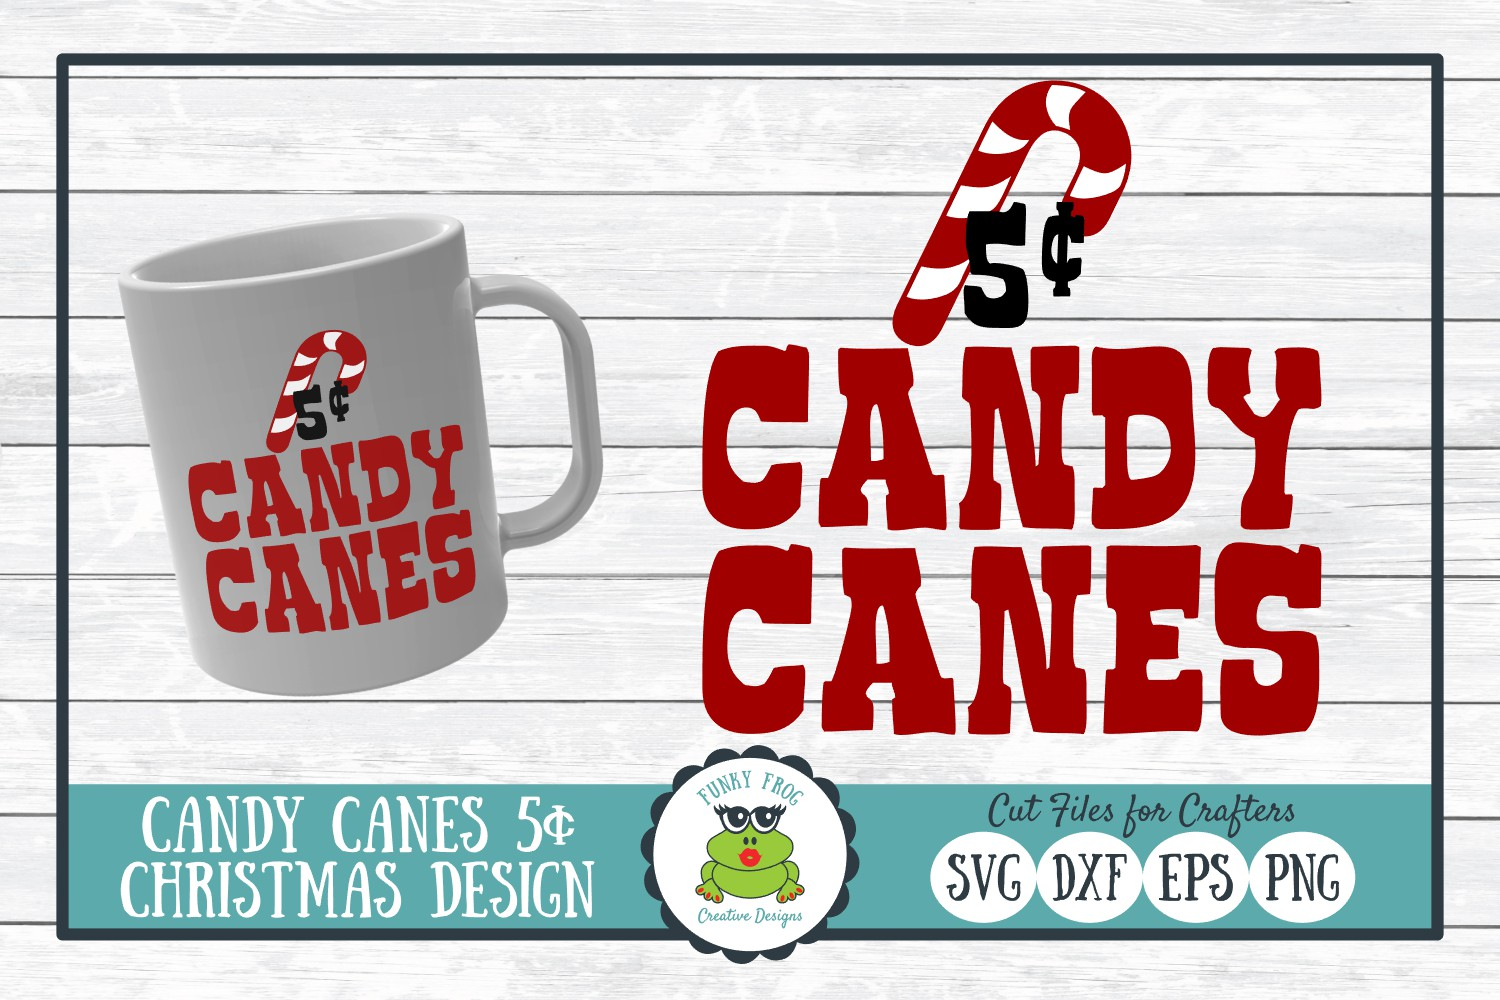 Download Free Candy Canes 5 Cents Graphic By Funkyfrogcreativedesigns for Cricut Explore, Silhouette and other cutting machines.